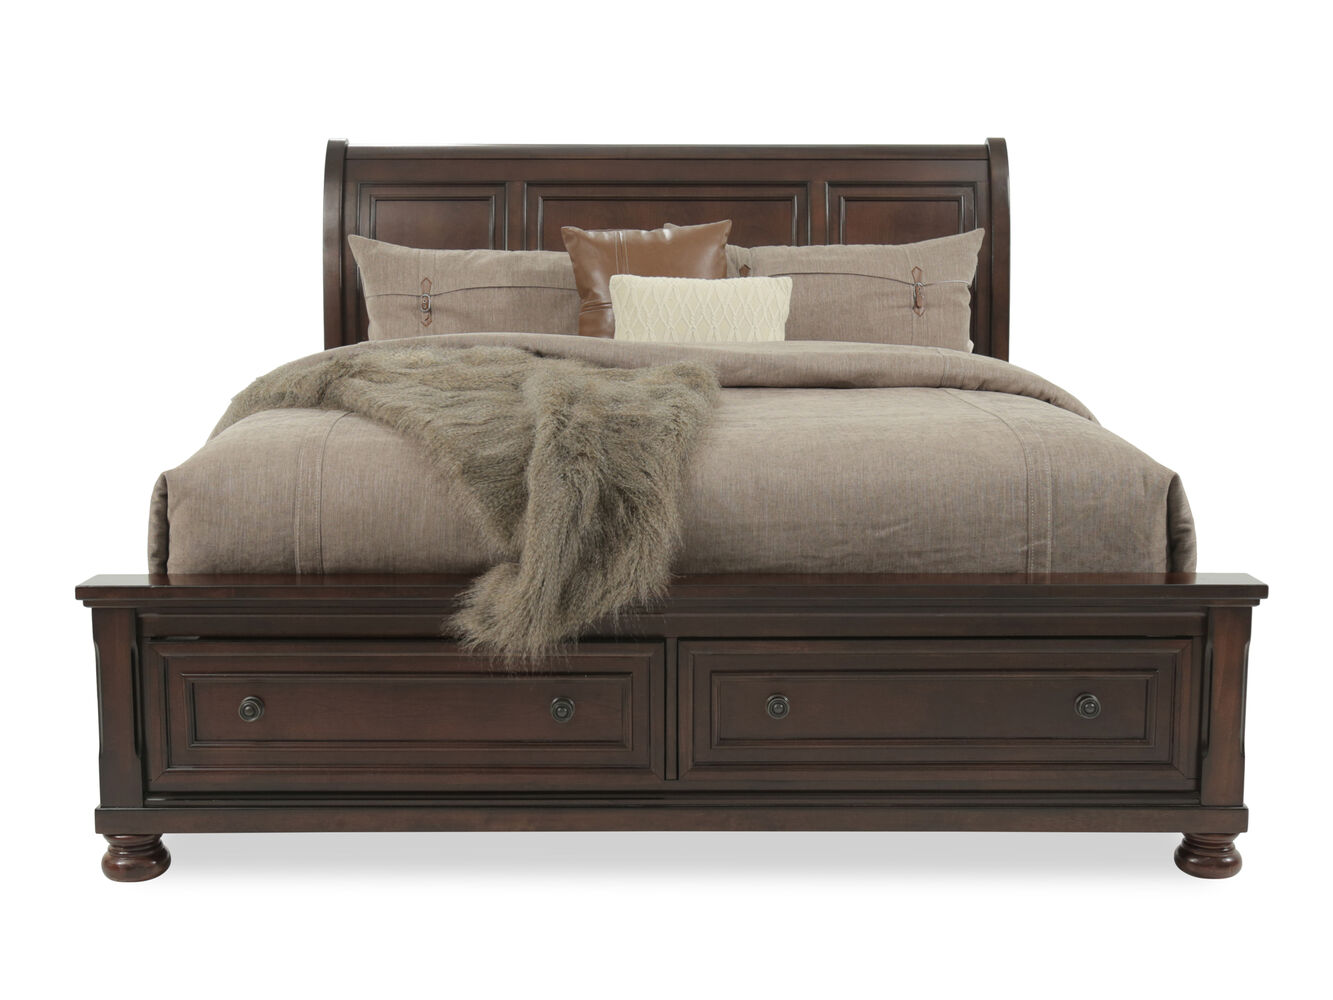 King sleigh bed with storage drawers - Ashley 57 Quot Vintage Beveled Storage Casual Sleigh Bed In Rustic Brown